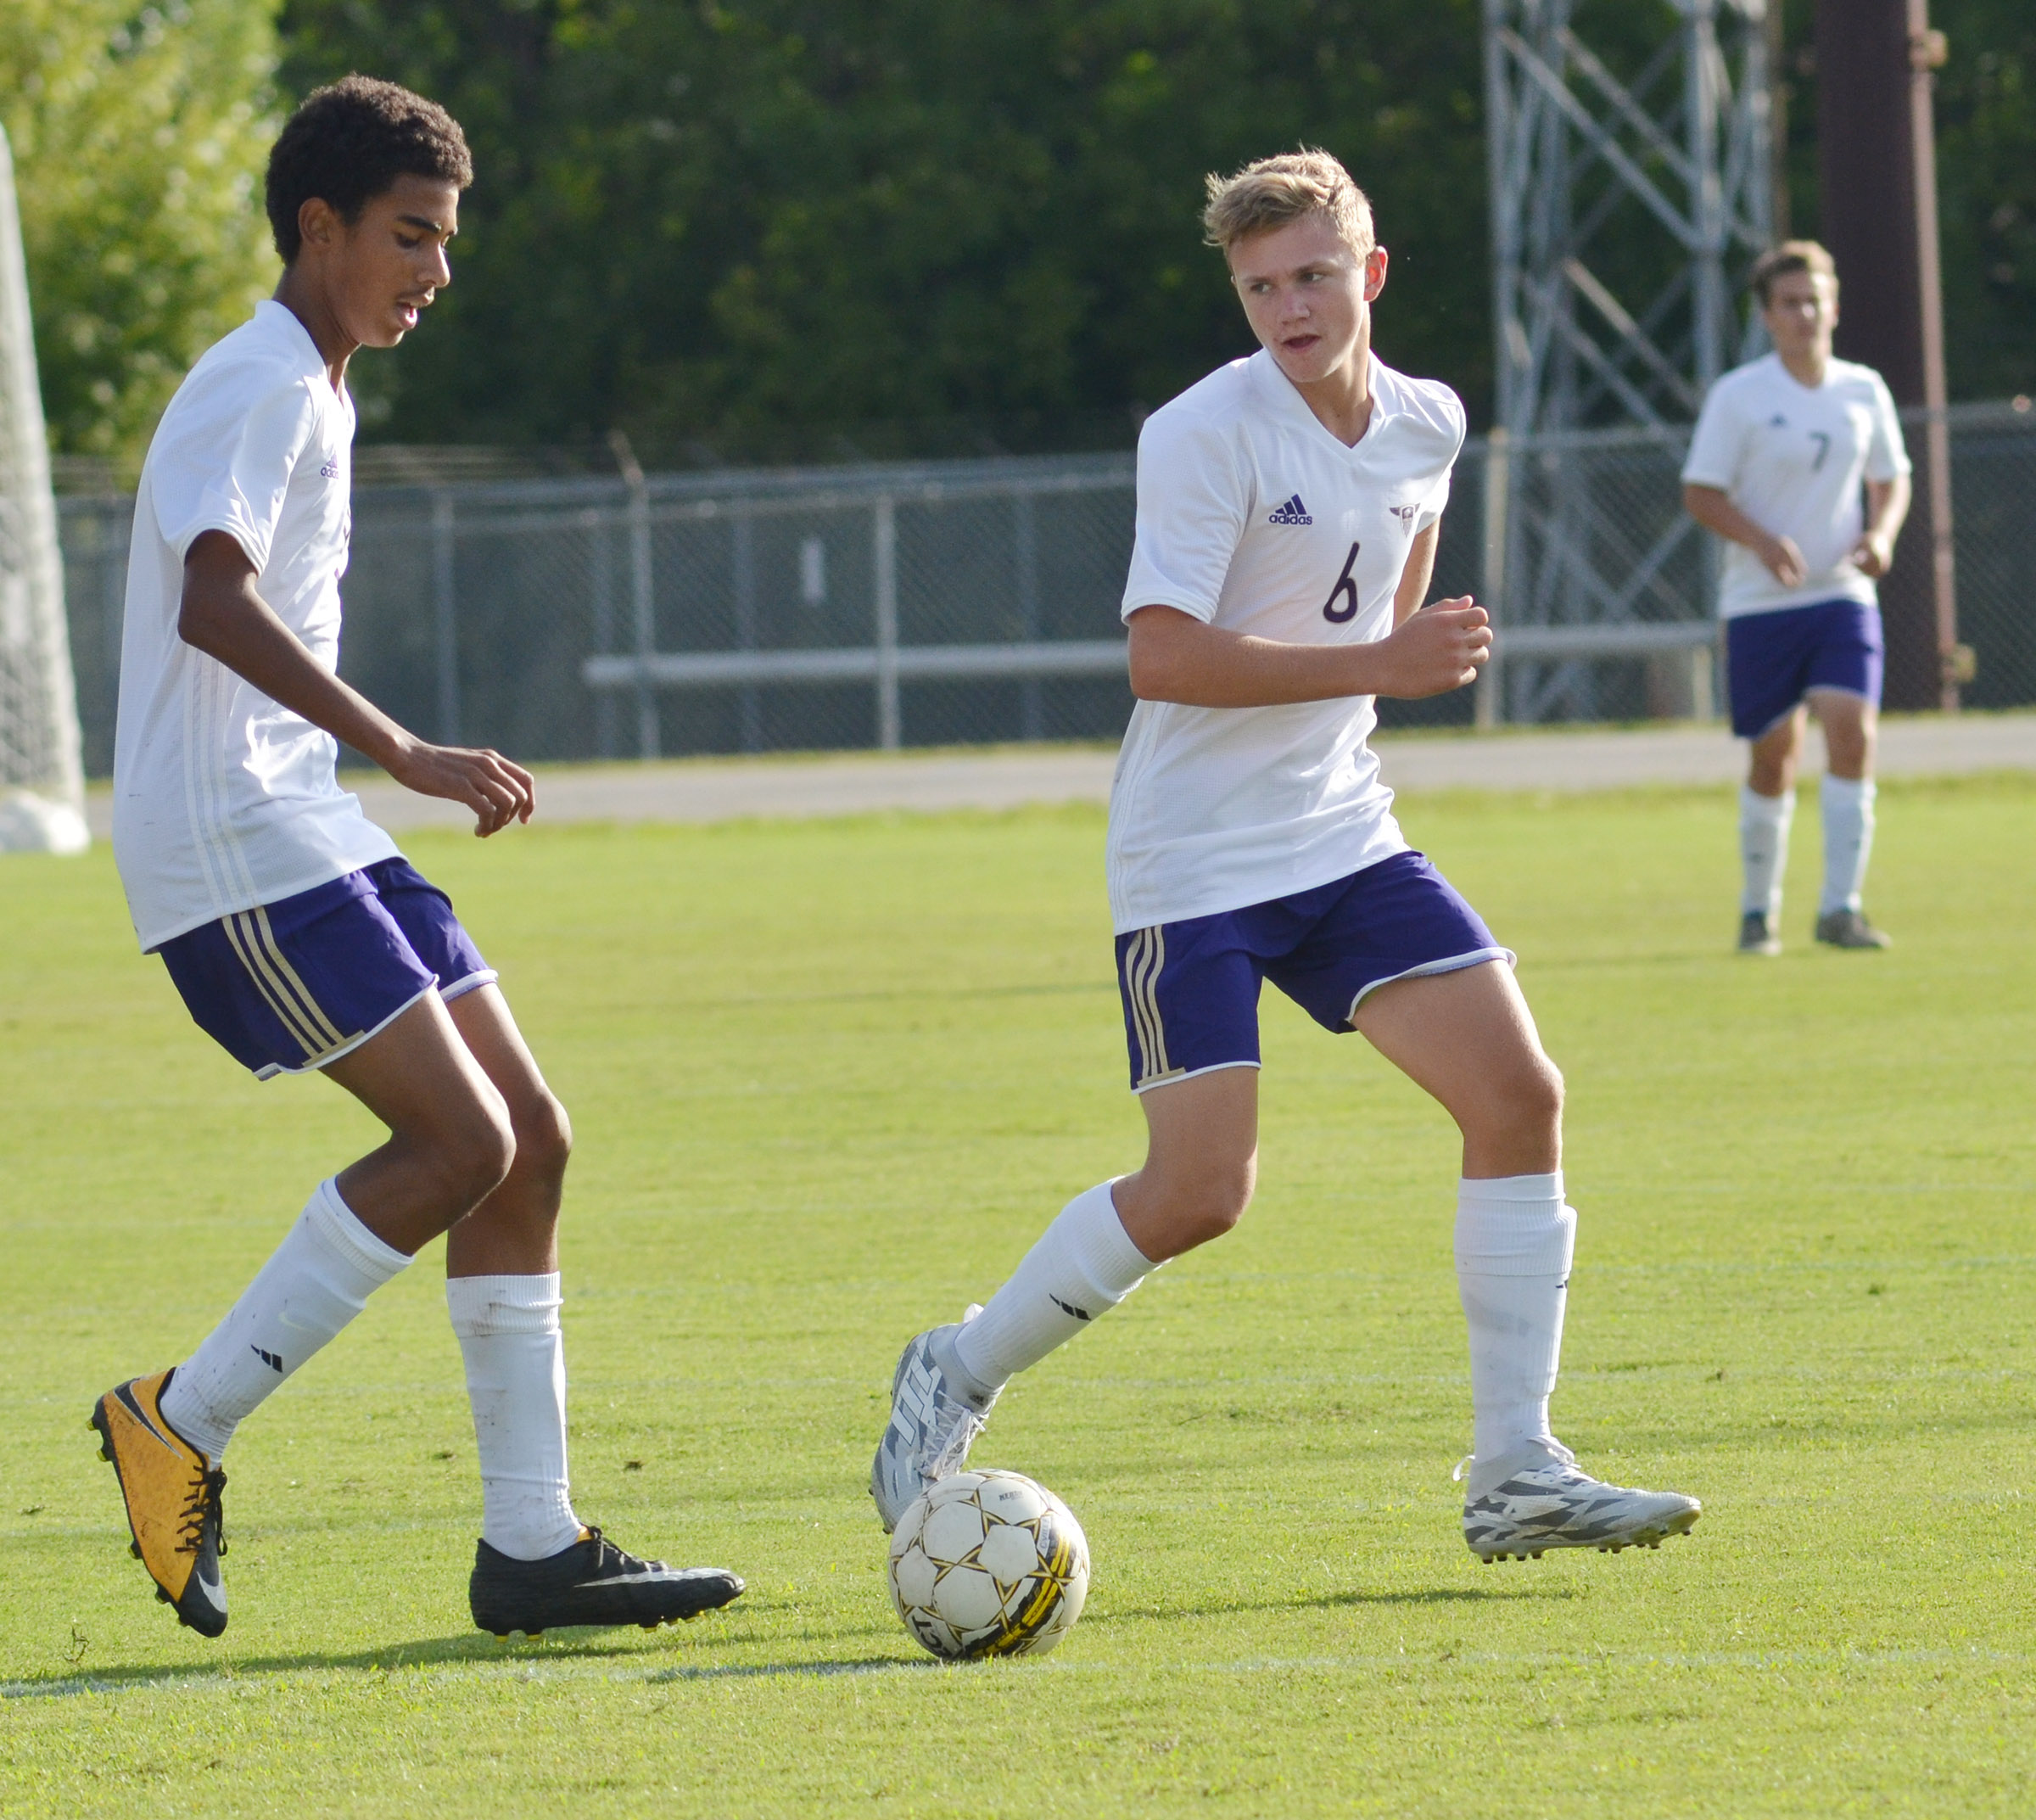 CHS sophomore Daniel Silva, at left, passes to freshman Blase Wheatley.